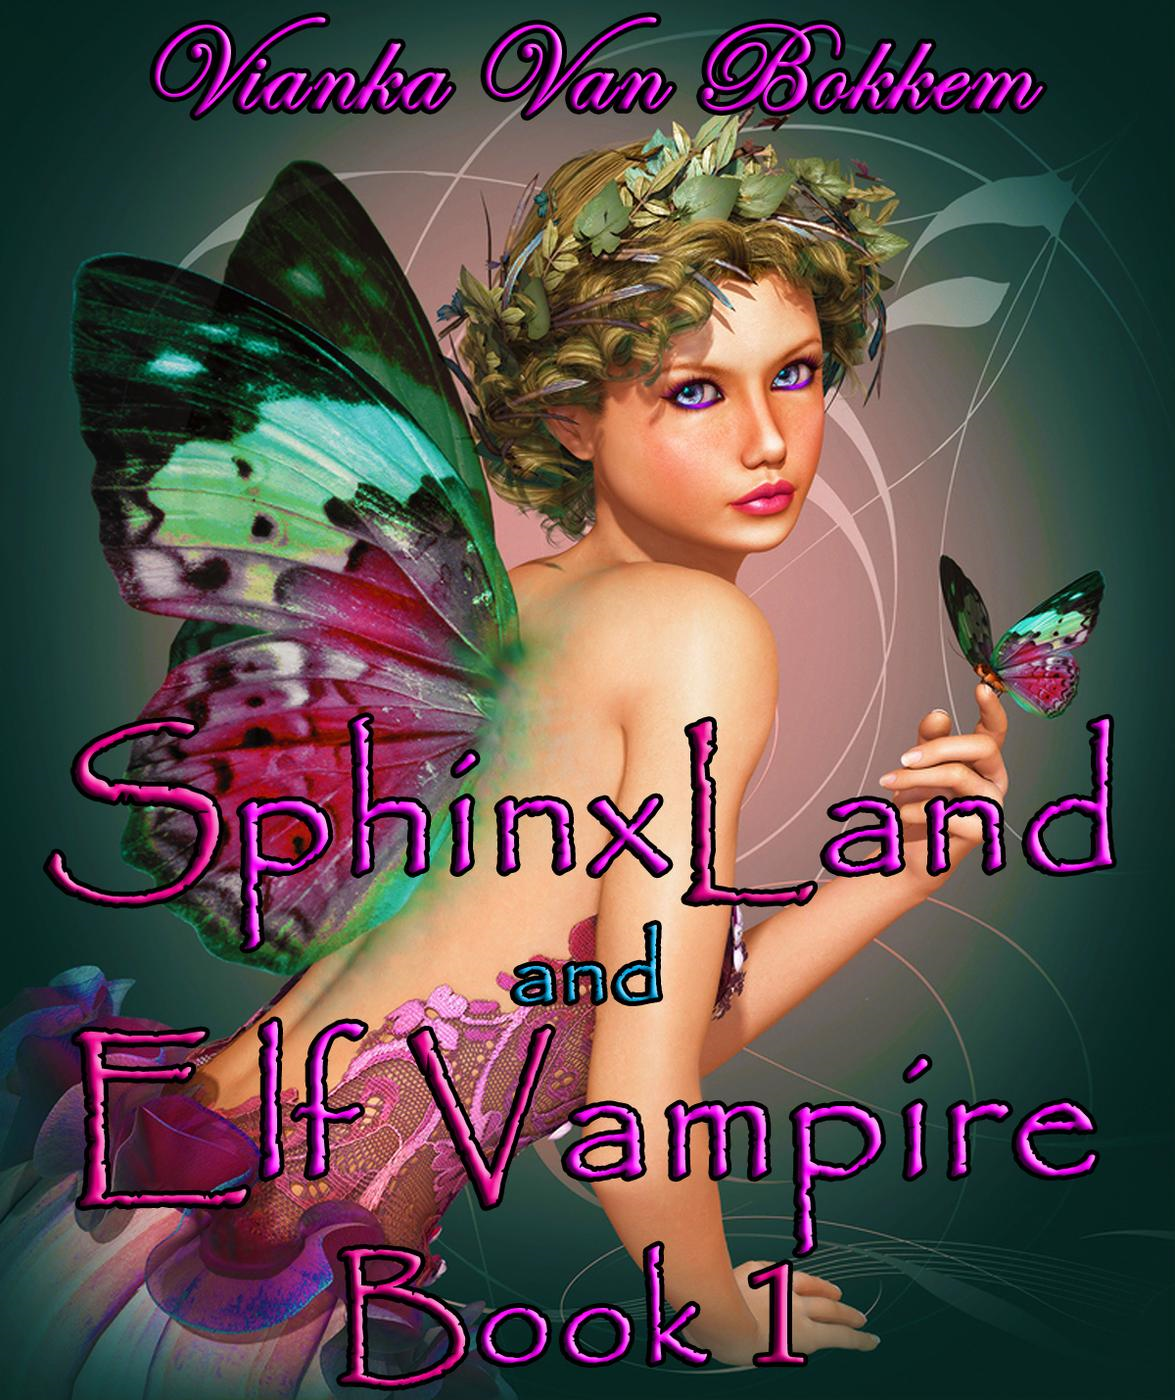 SphinxLand and Elf Vampire Book 1